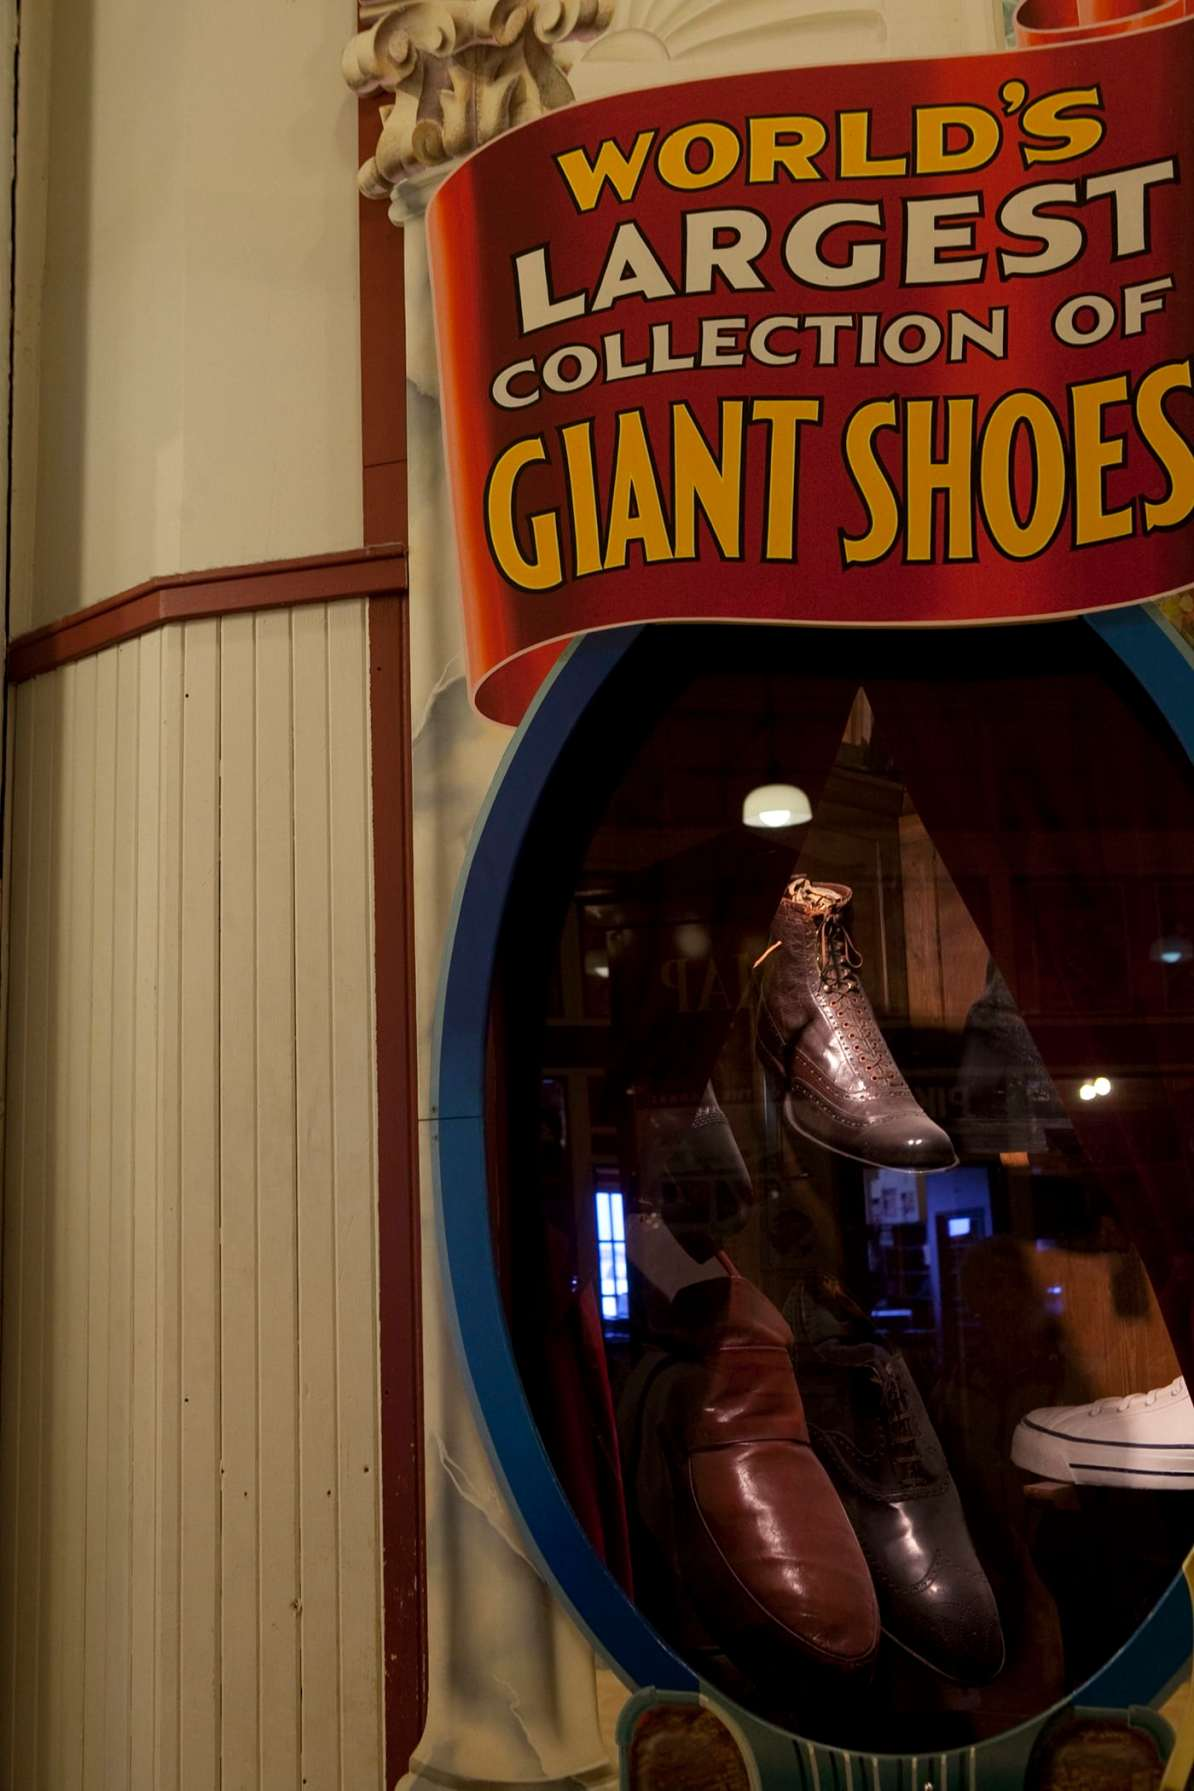 The World's Largest Collection of Giant Shoes at The World Famous Giant Shoe Museum in Pike Place Market in Seattle, Washington.